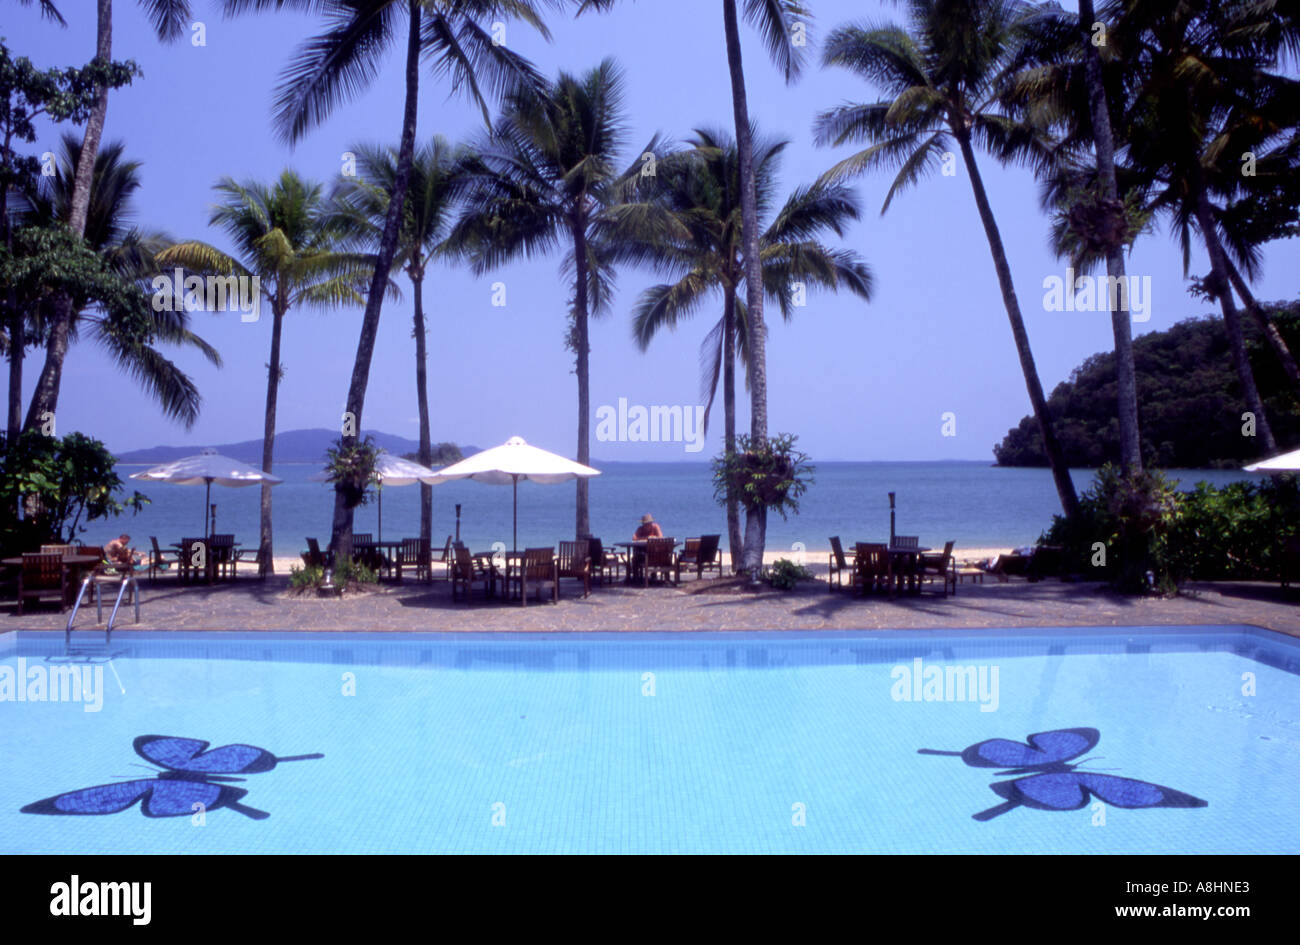 The Pool At The Dunk Island Resort Off Mission Beach